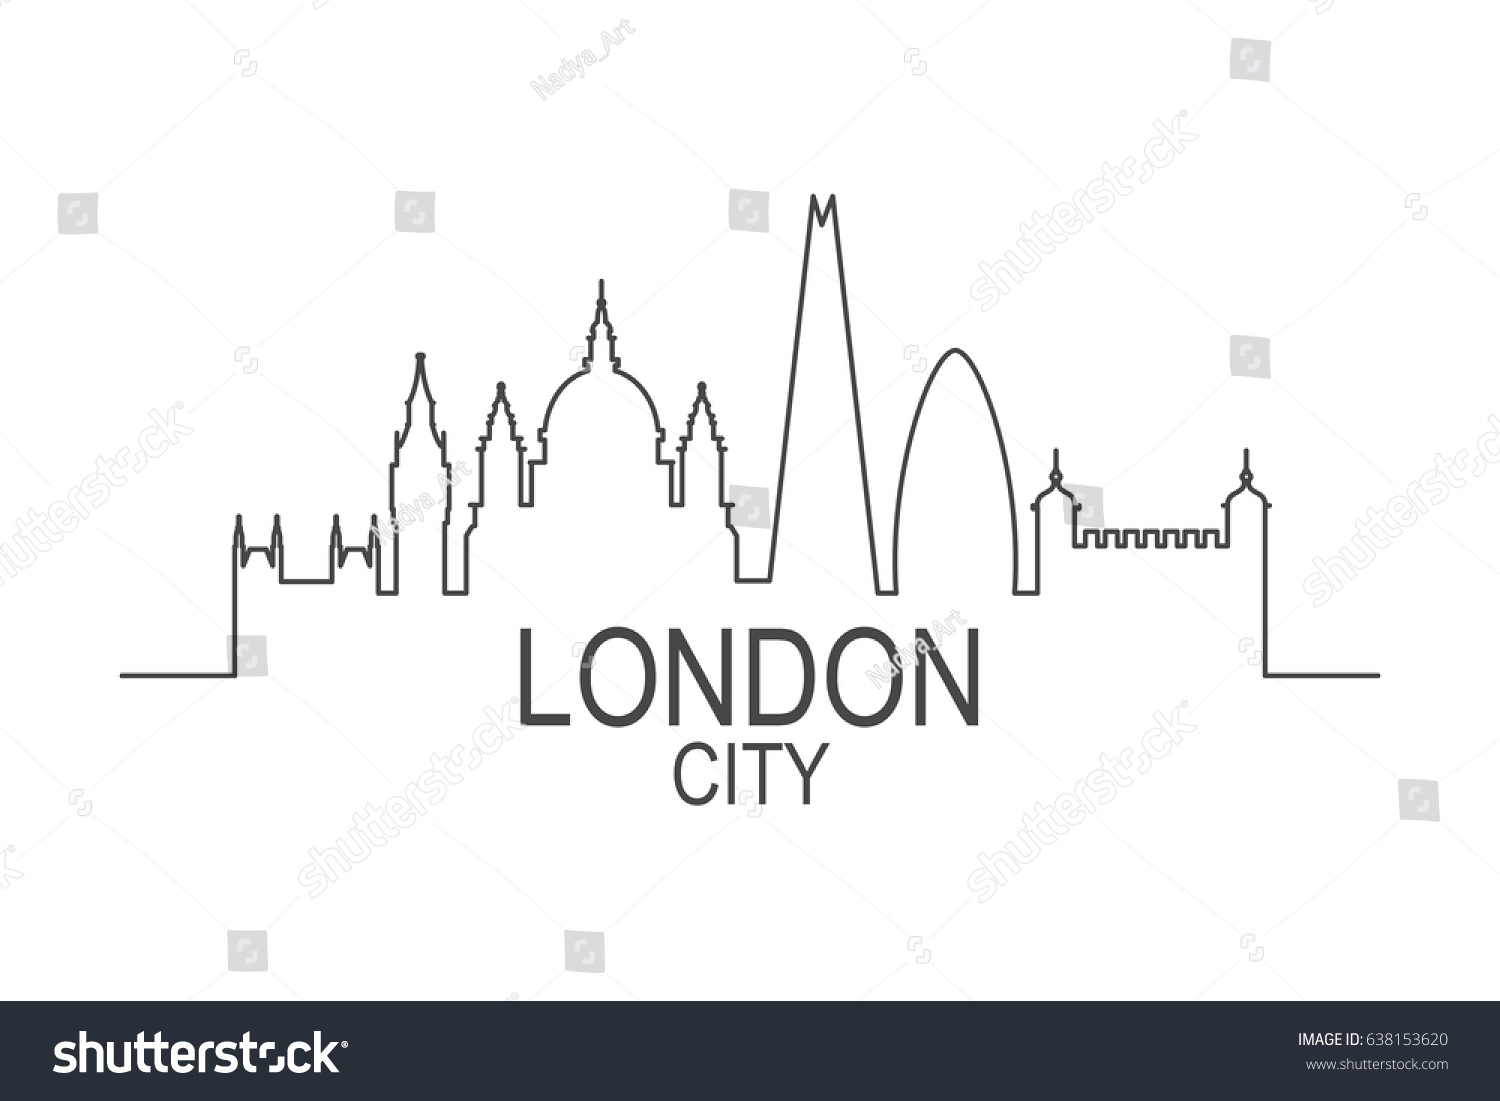 London City Skyline Vector Illustration Of Simple Line Silhouette Modern Design Isolated